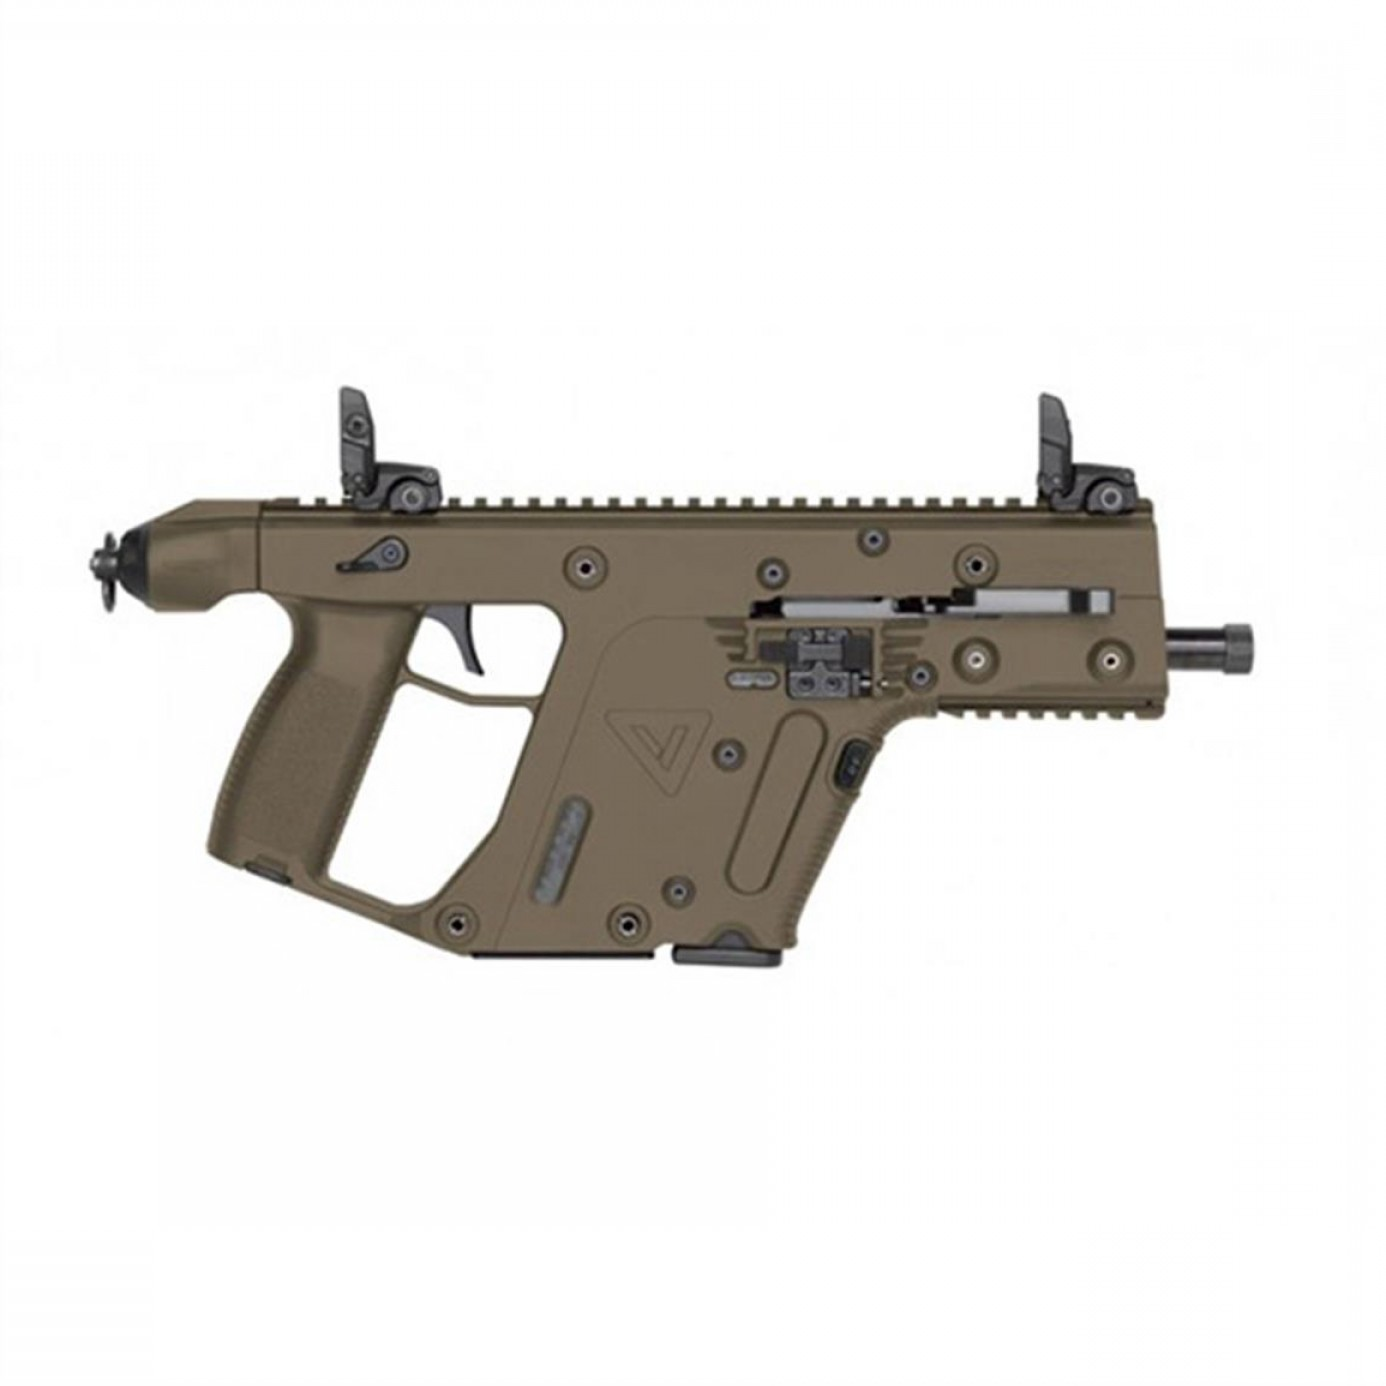 Kriss Vector SMG With Under Barrel: Kriss Vector Gen Ii Sdp Fde Pistol Semi Automatic Acp Barrel Rounds